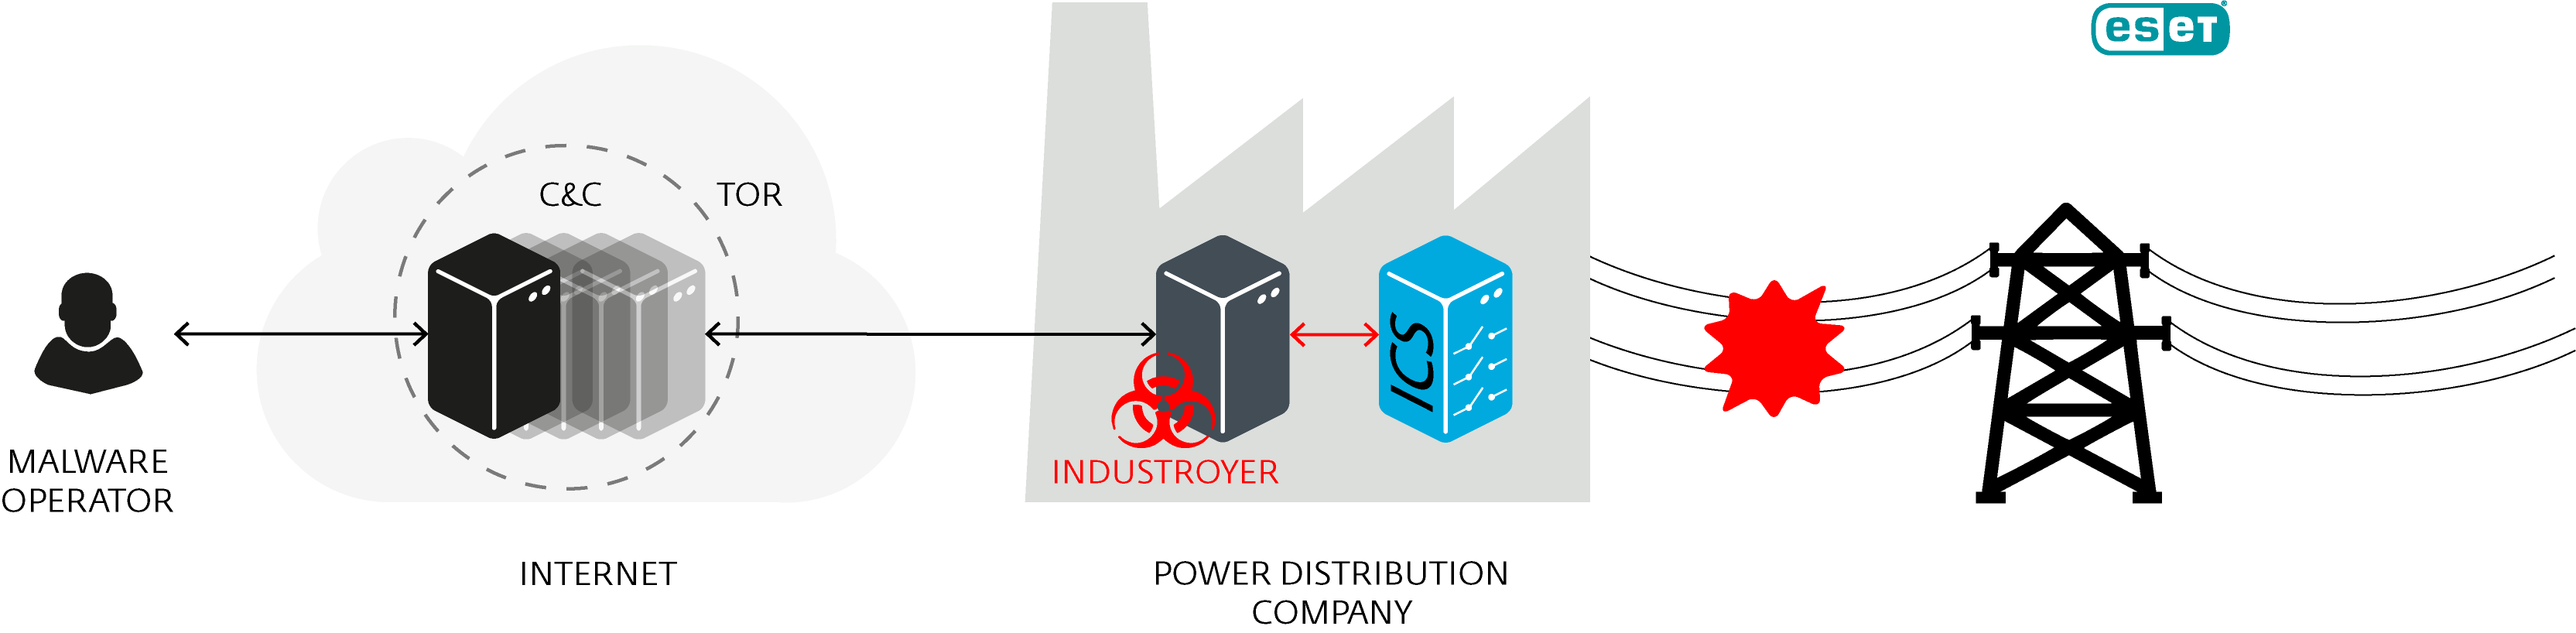 Figure 1: Scheme of Industroyer operation  - Industroyer operation 1 - Biggest threat to industrial control systems since Stuxnet